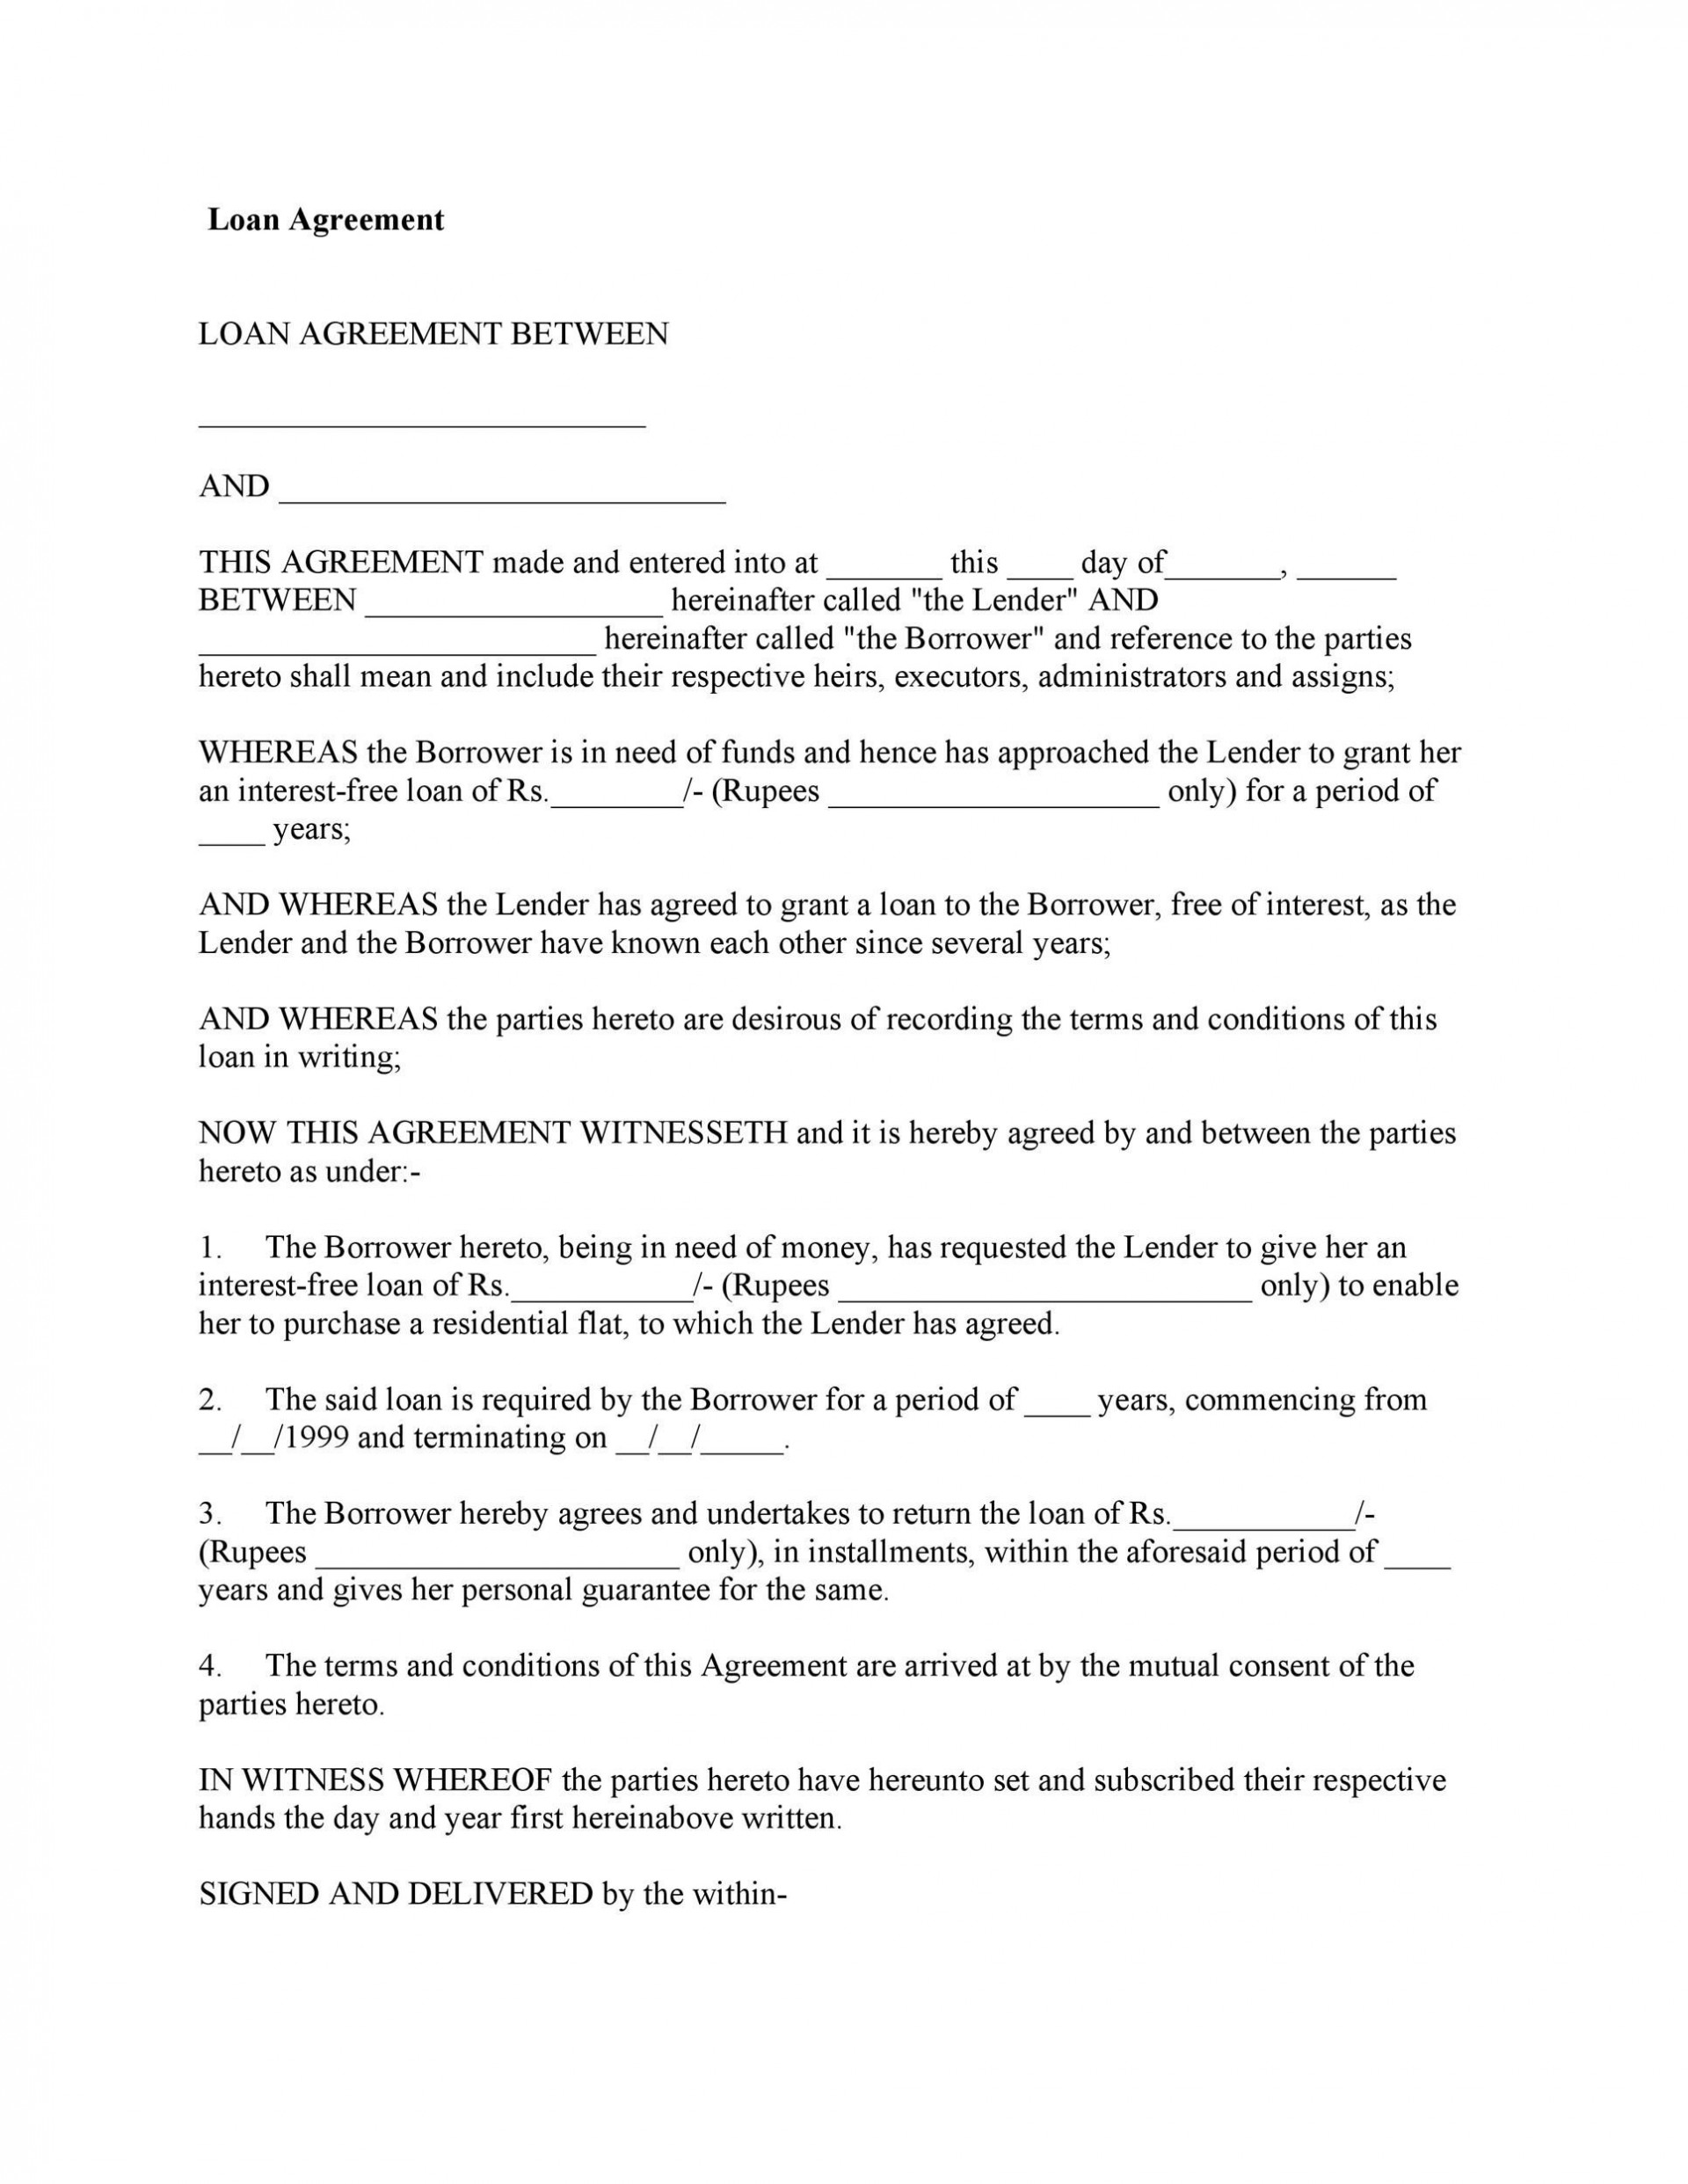 009 Fascinating Family Loan Agreement Template Image  Nz Uk Free1920